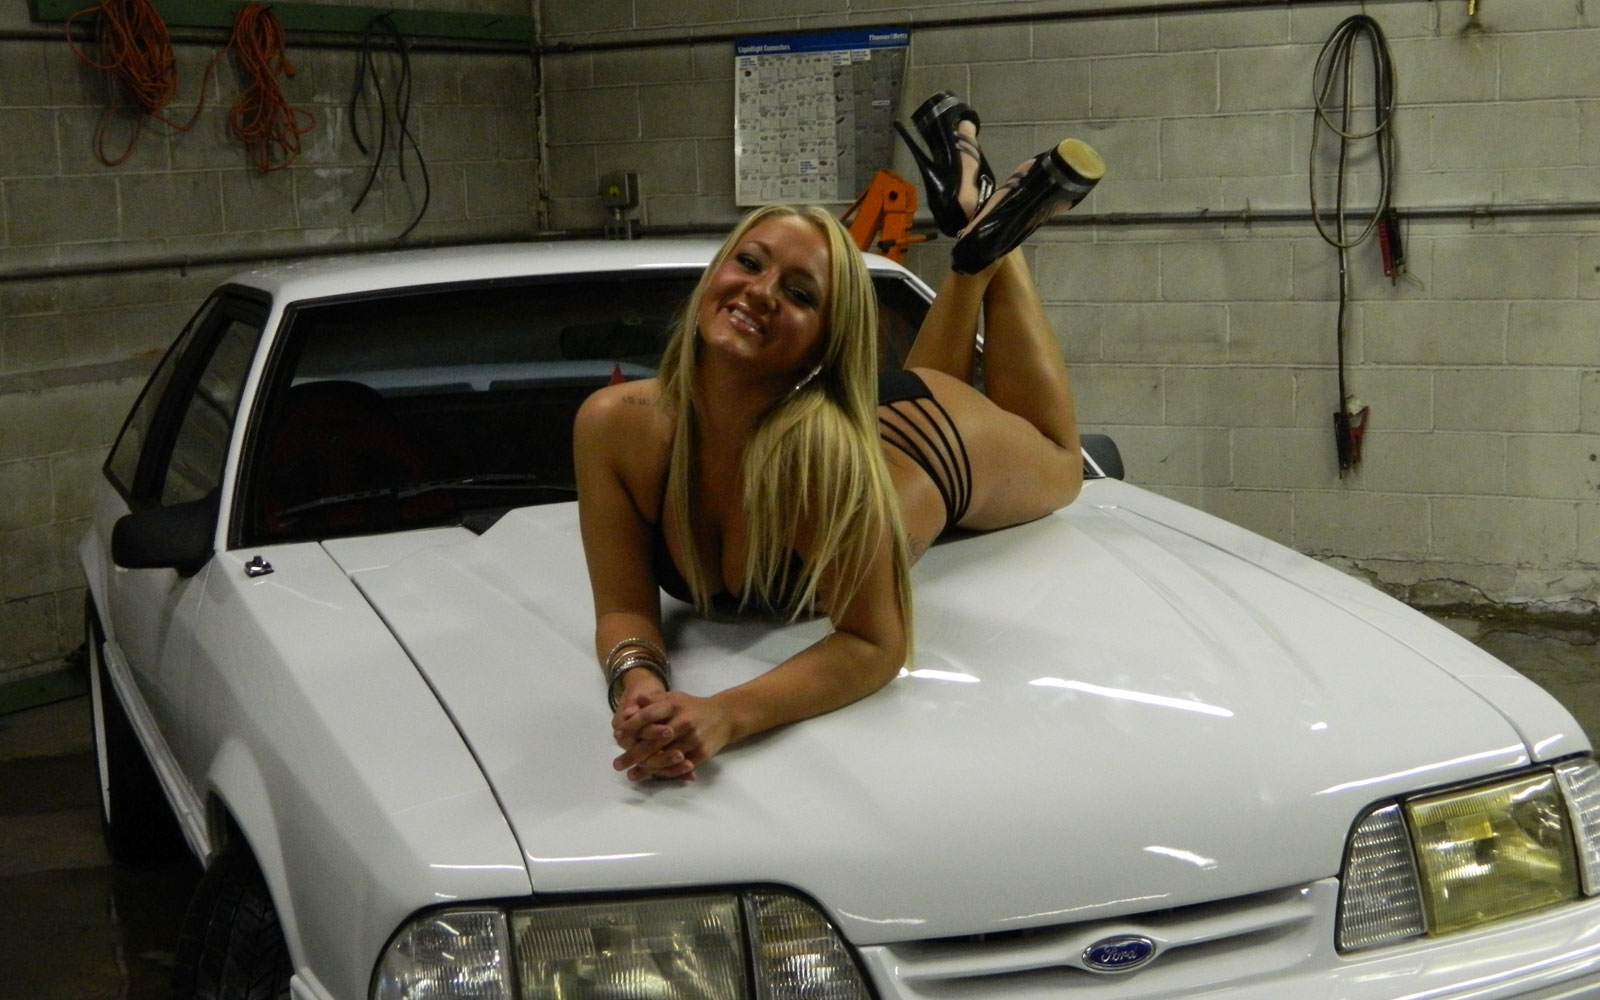 Sexy Girls And Stunning Cars Hd Wallpapers - All Hd Wallpapers-7711